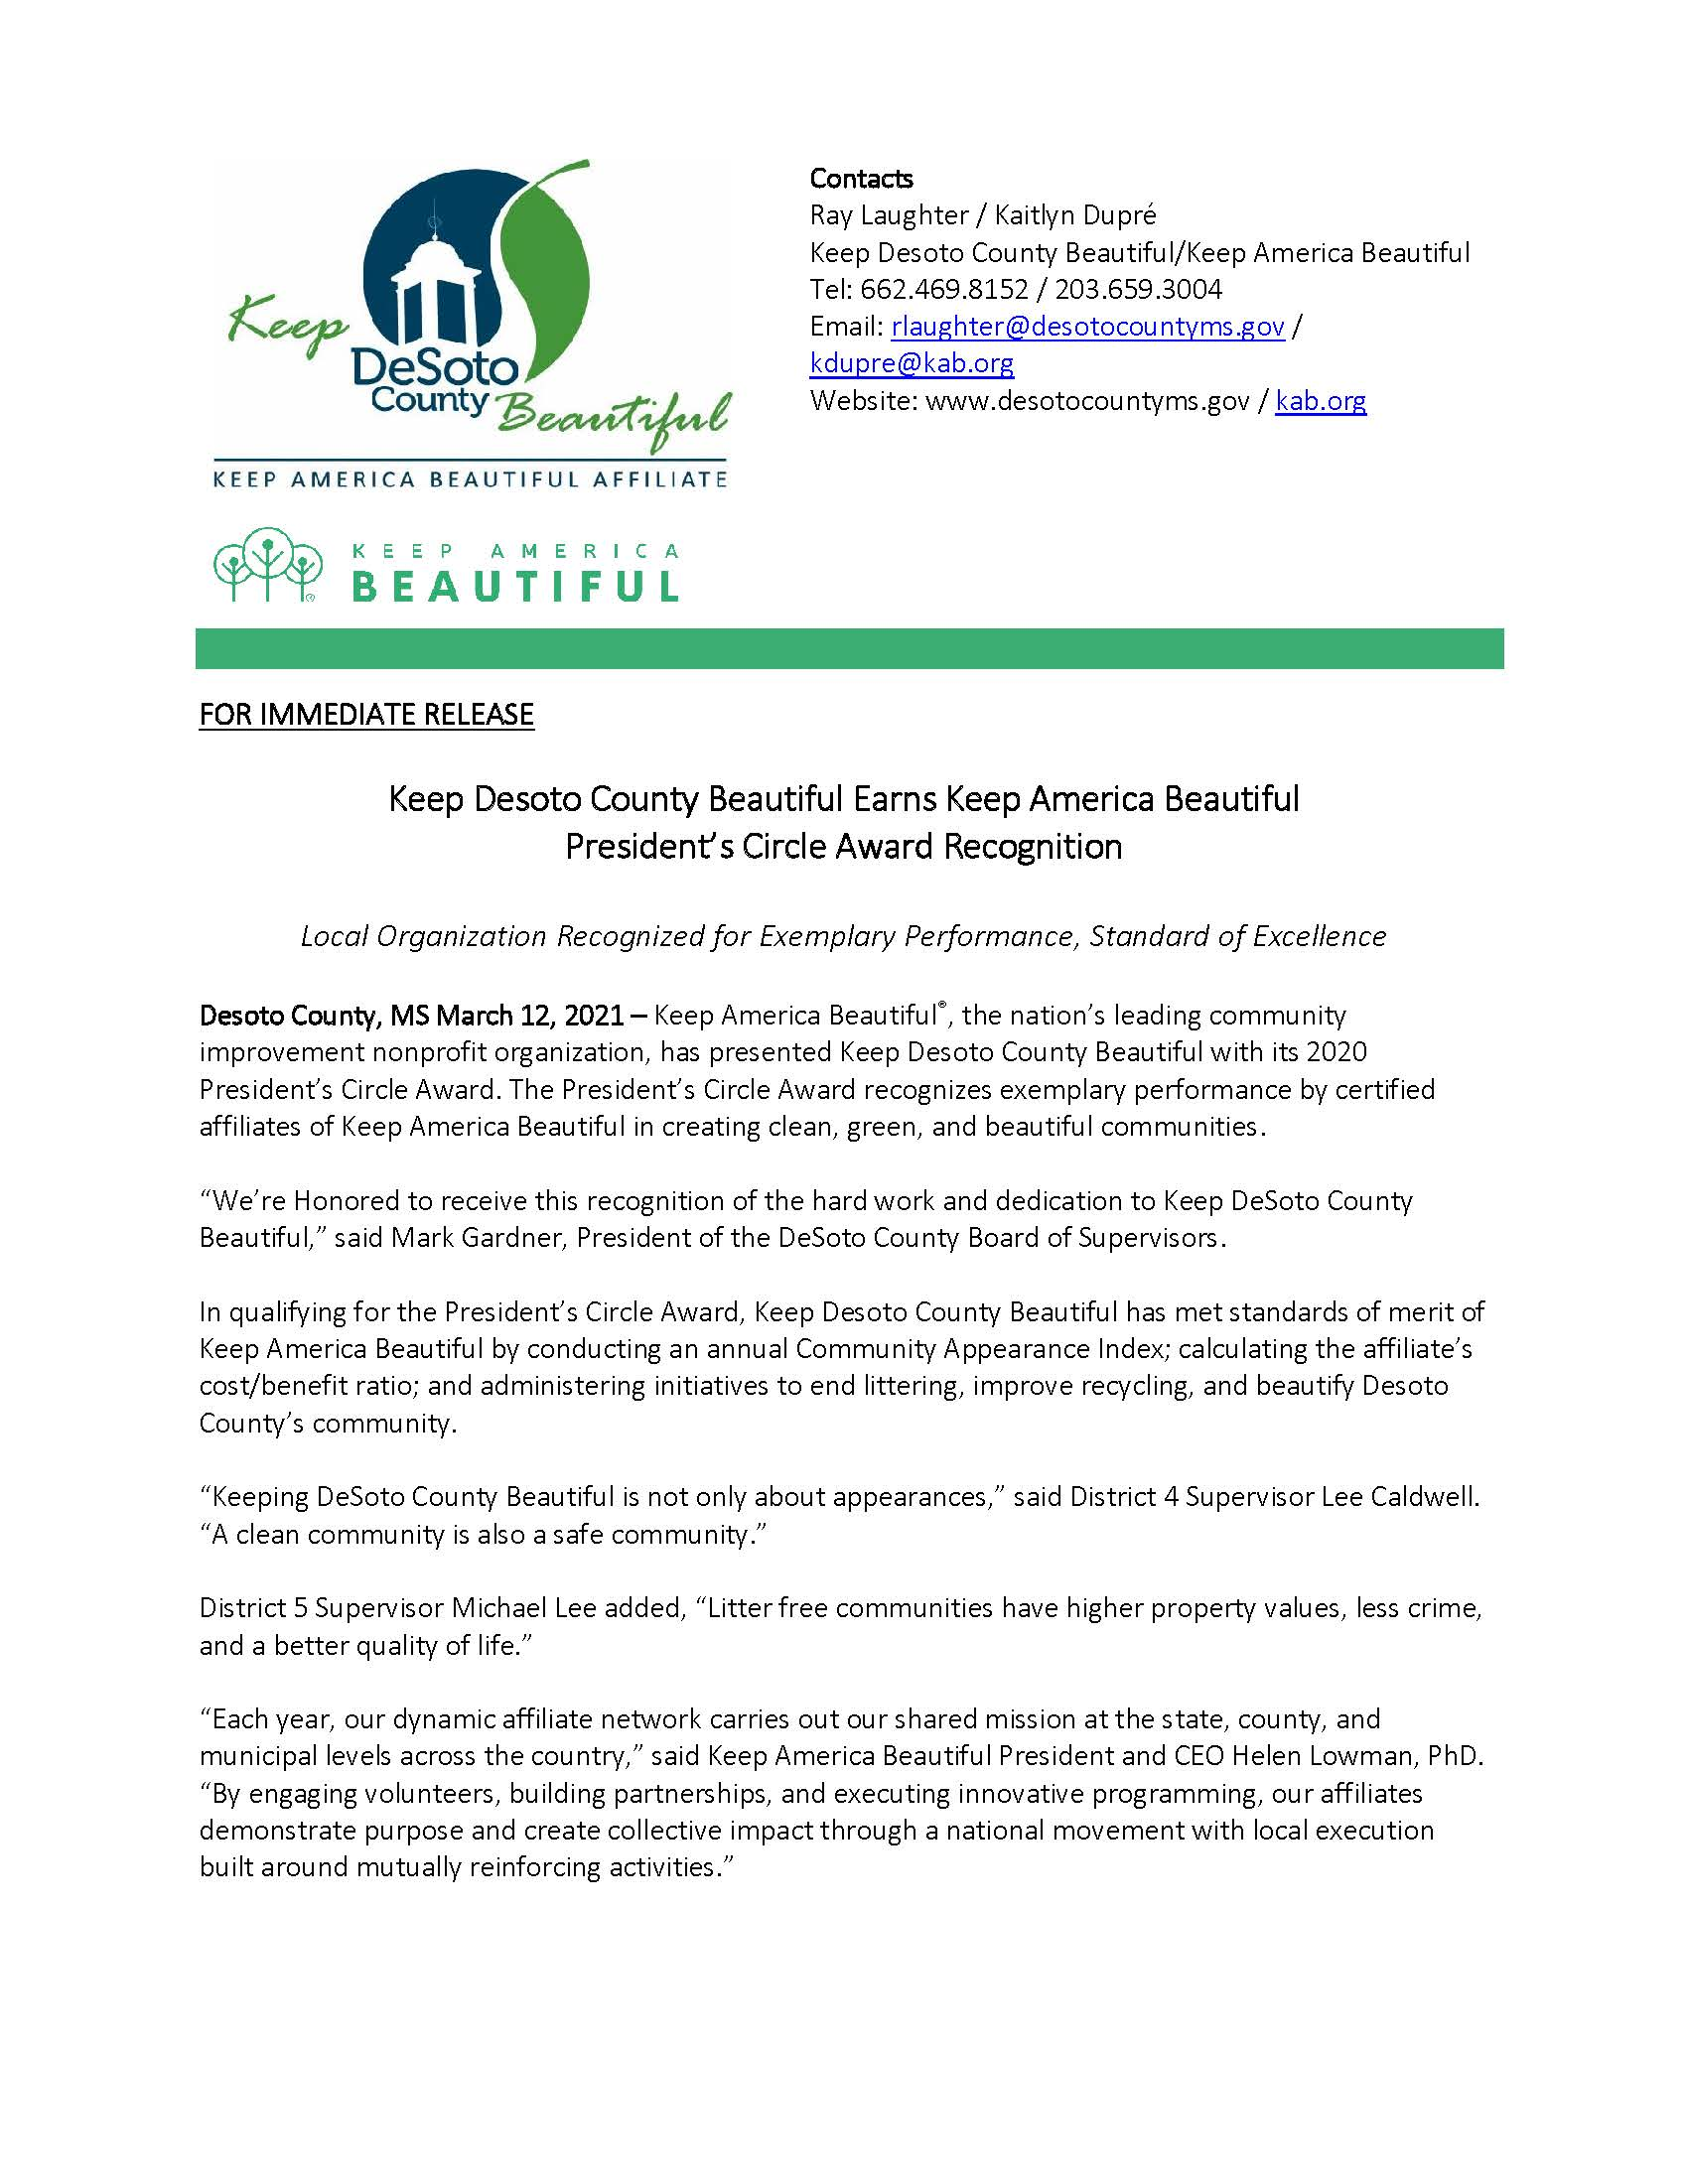 DeSoto County Beautiful  Award 2020 Page 1